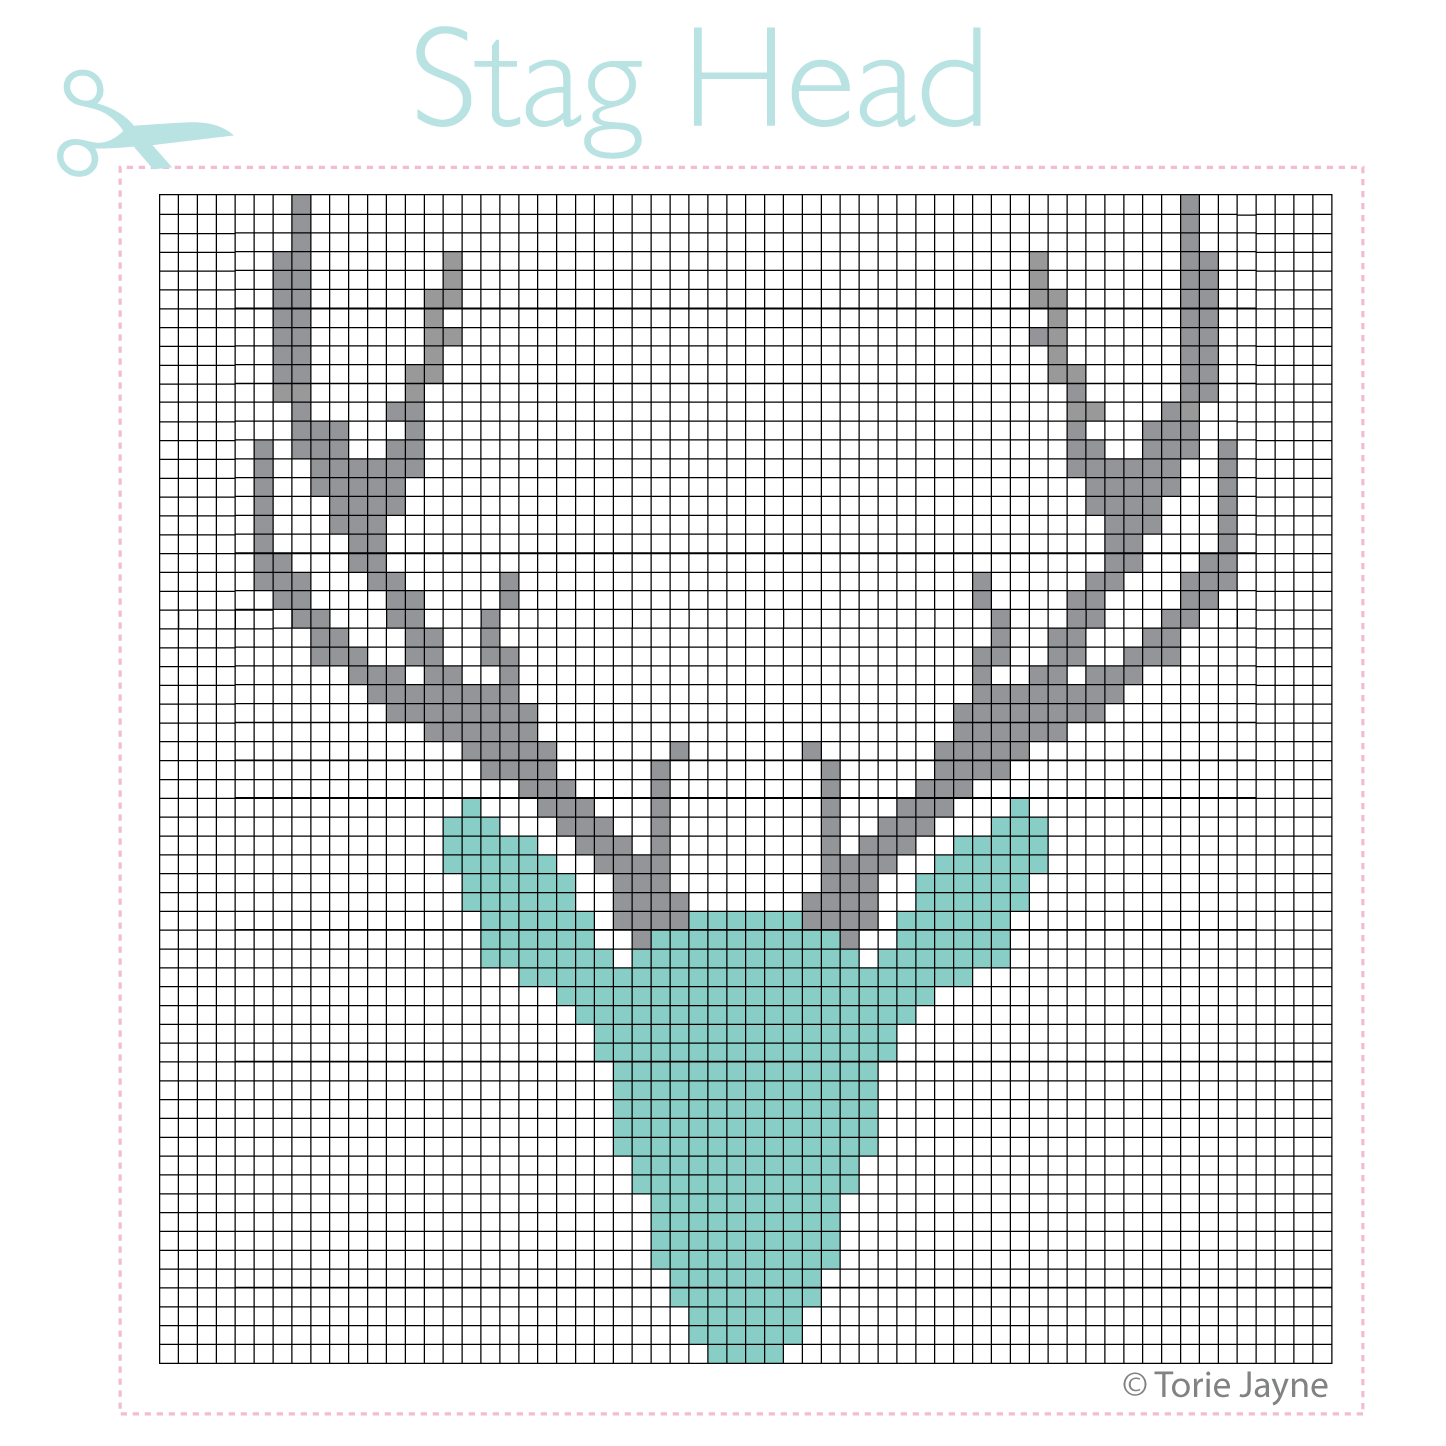 Stag head cross stitch pattern